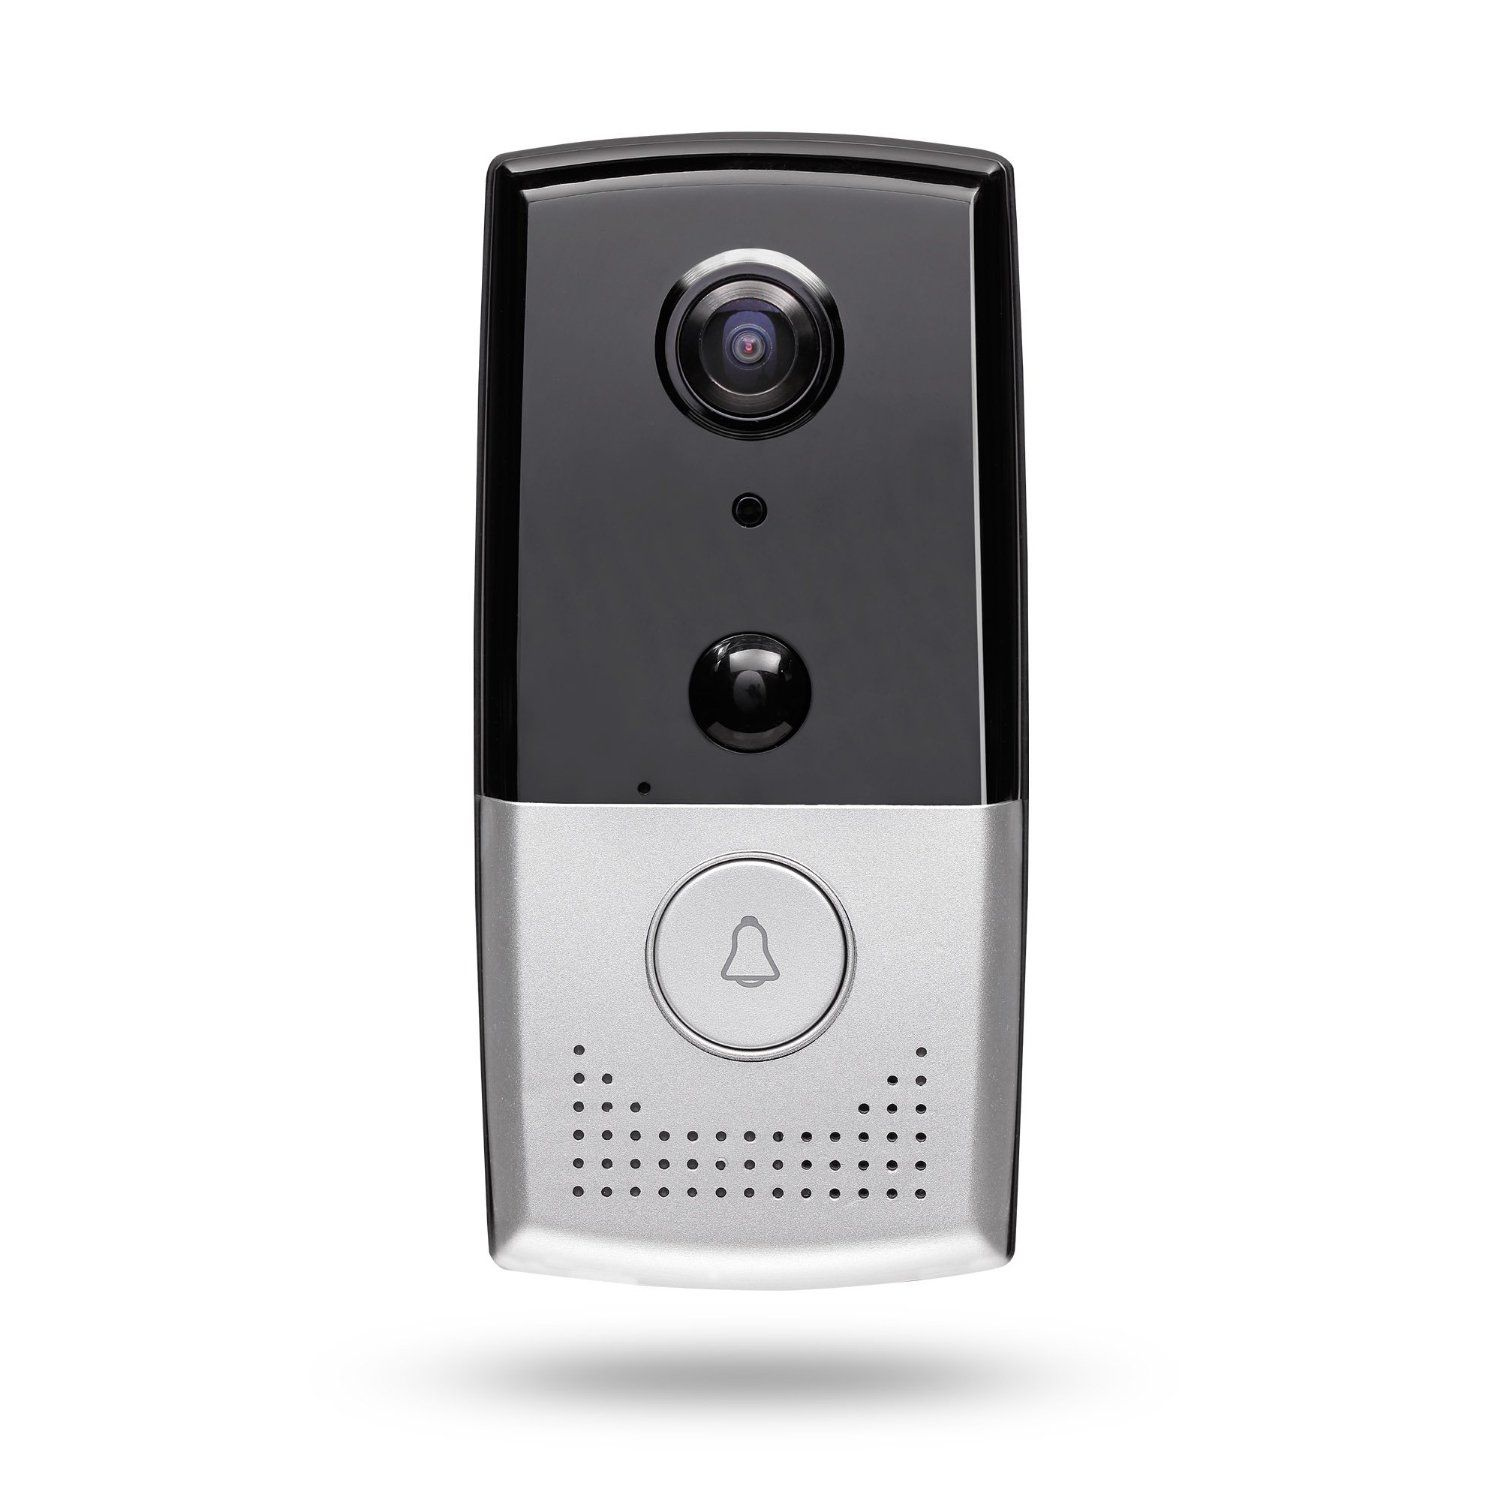 Amazon.com : Zmodo Greet - Smart WiFi Video Doorbell ...